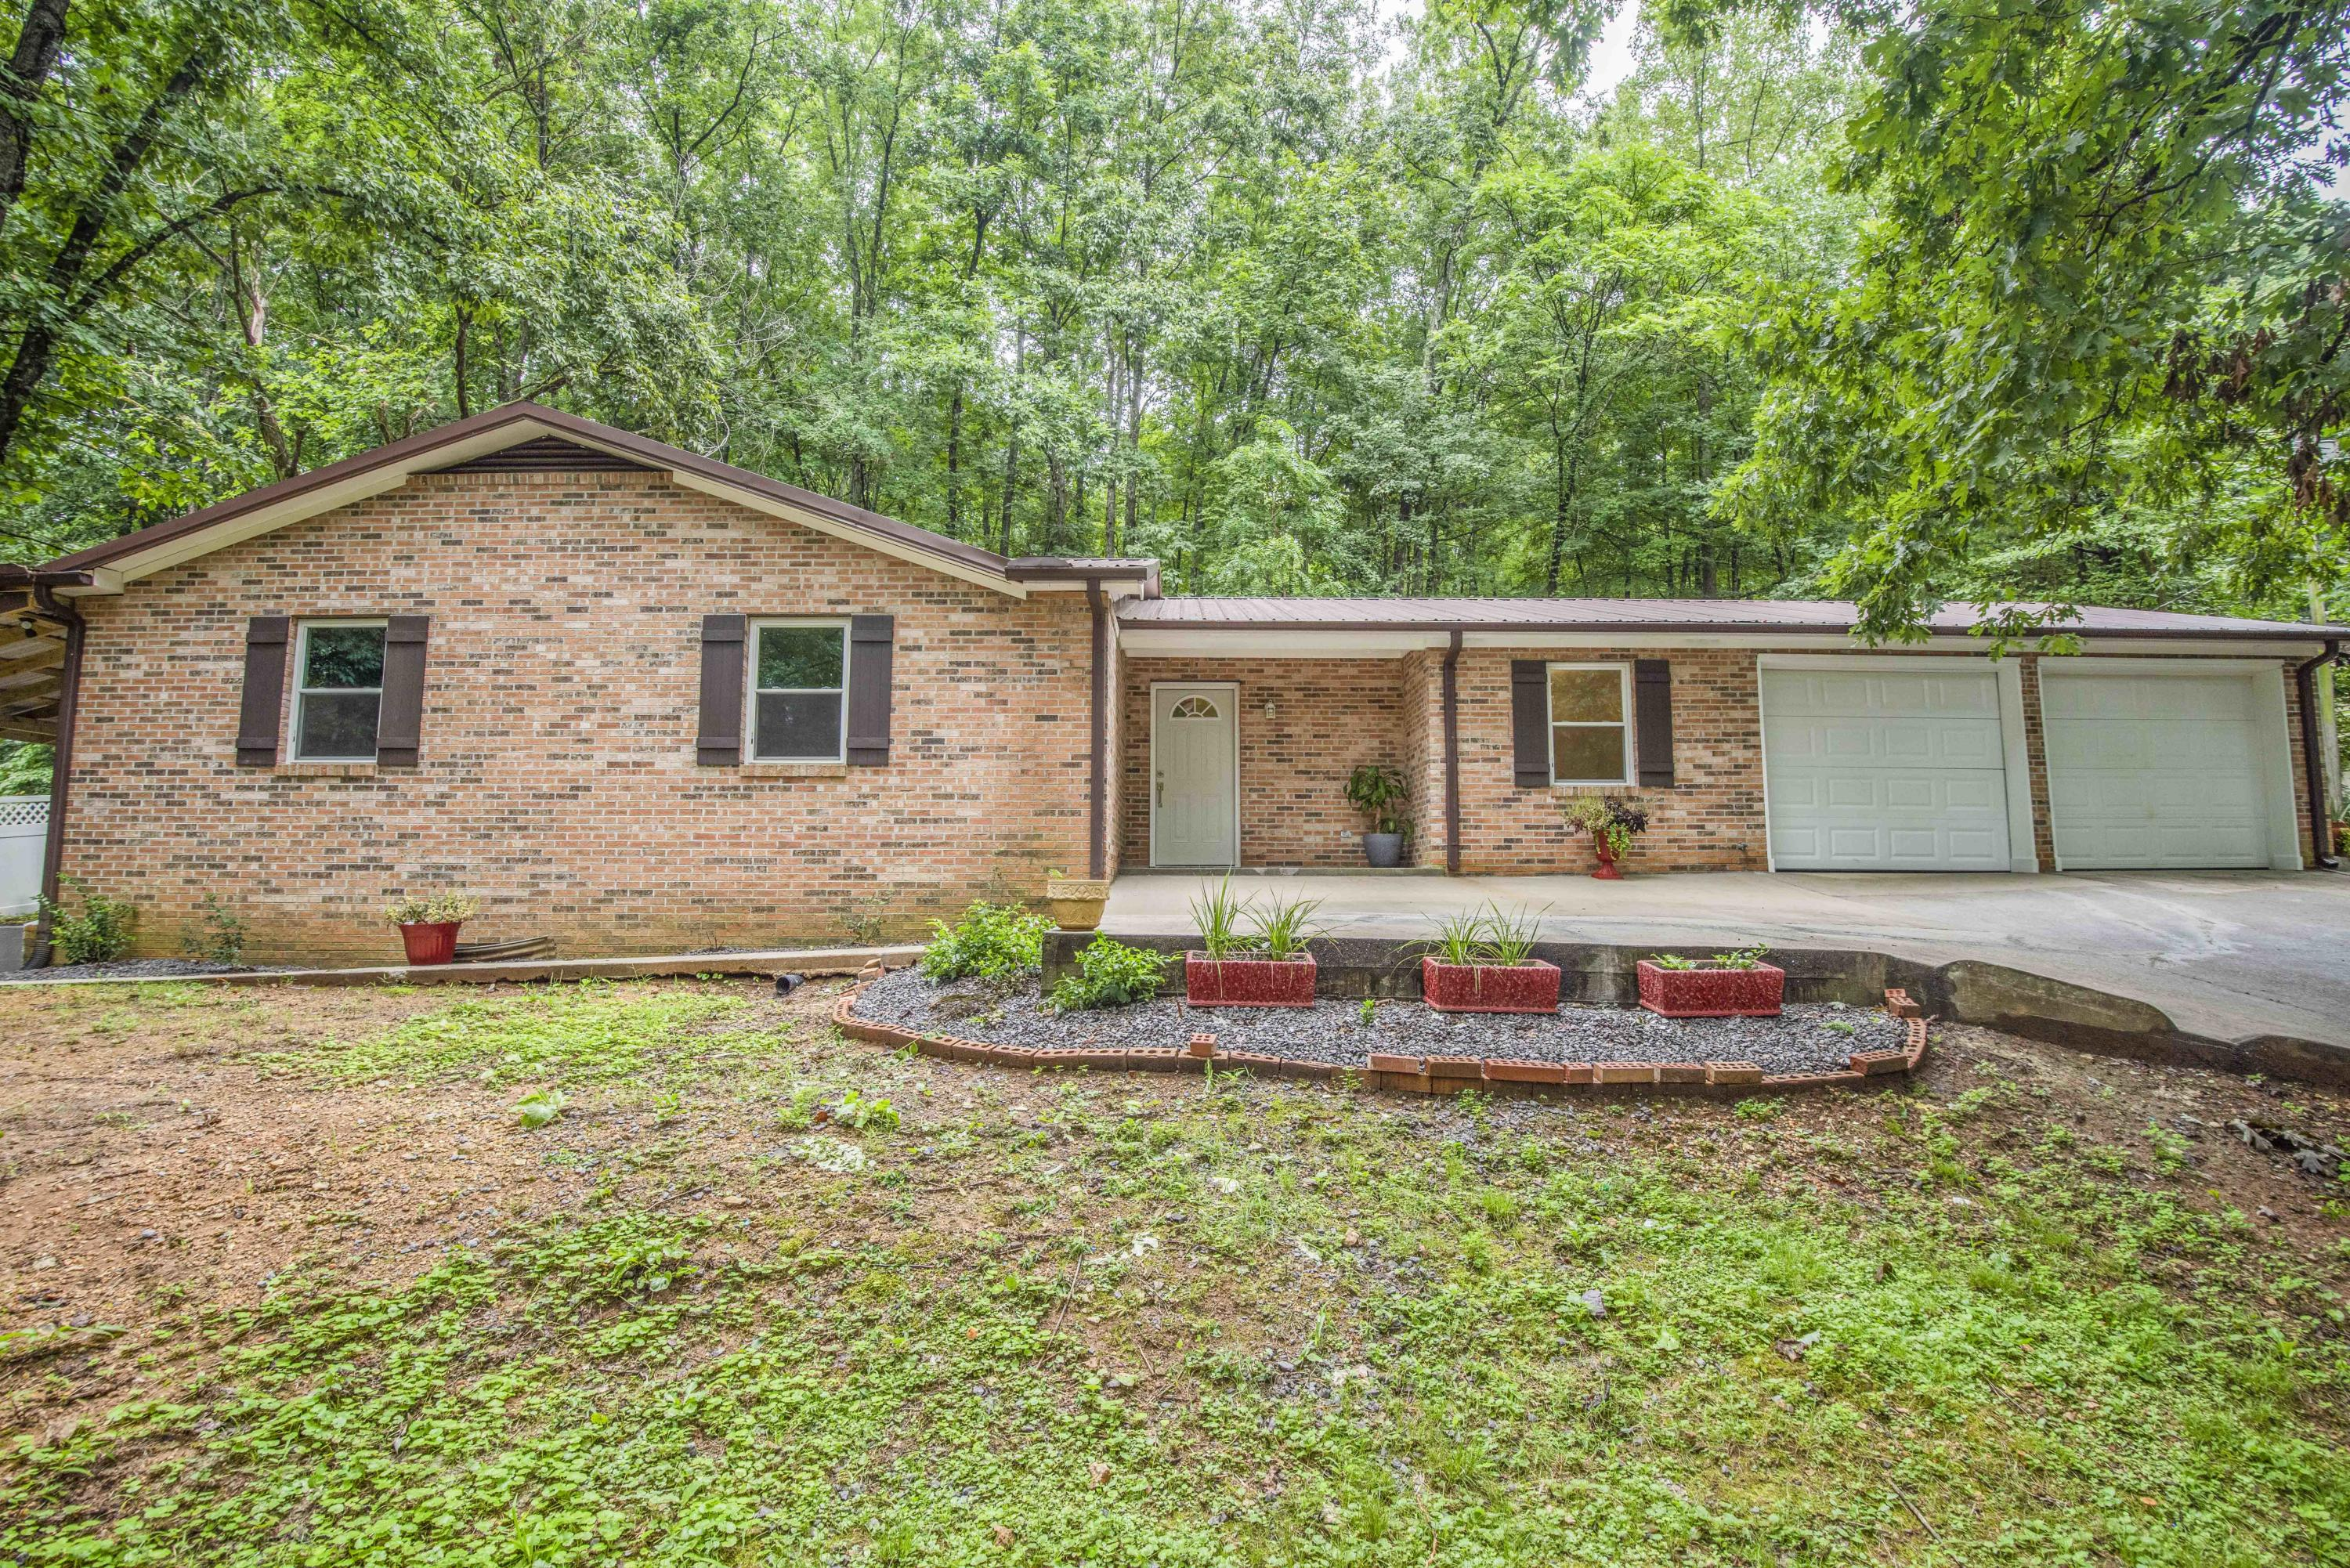 109 Timbercrest Drive, Oak Ridge, Tennessee 37830, 5 Bedrooms Bedrooms, ,2 BathroomsBathrooms,Single Family,For Sale,Timbercrest,1127454